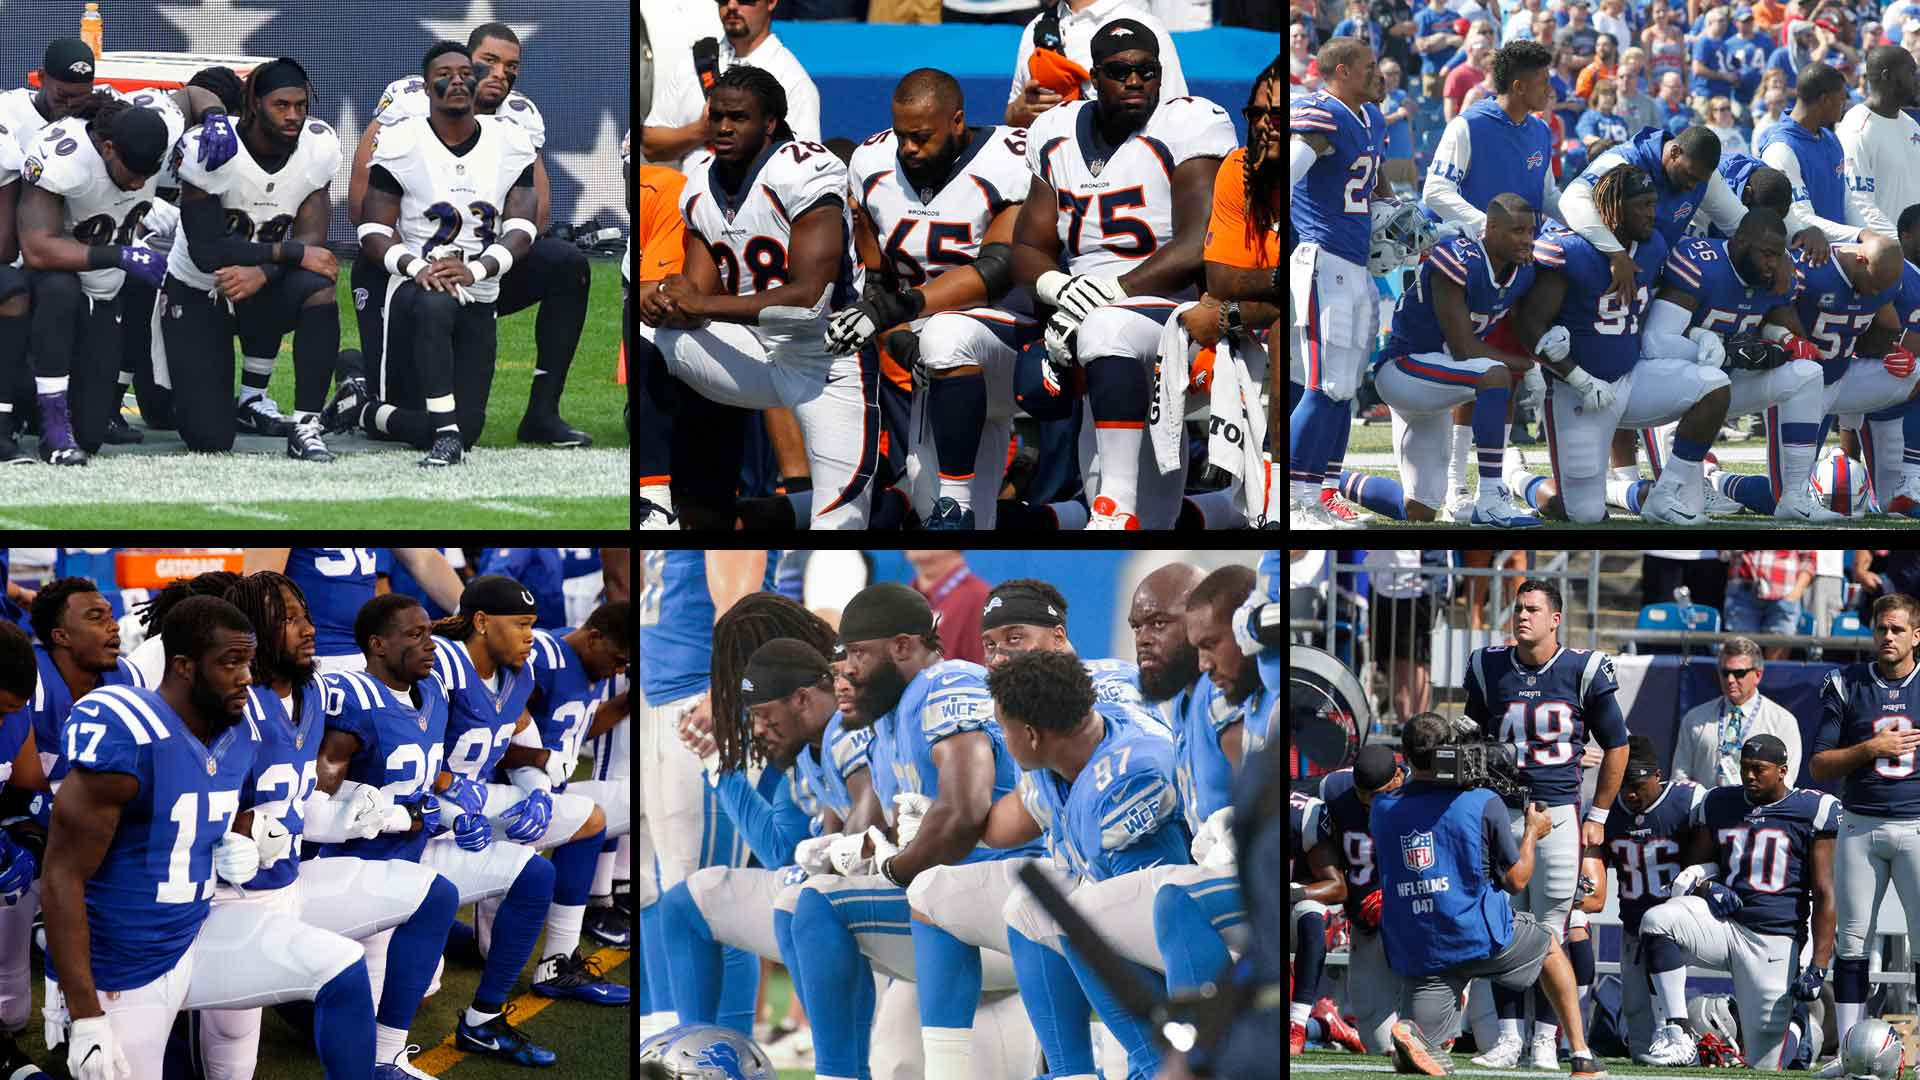 the play protests of the national football league players American taxpayers shelled out billions of dollars to build the stadiums that national football league players are now using to stage their kneel-down protests of the national anthem.